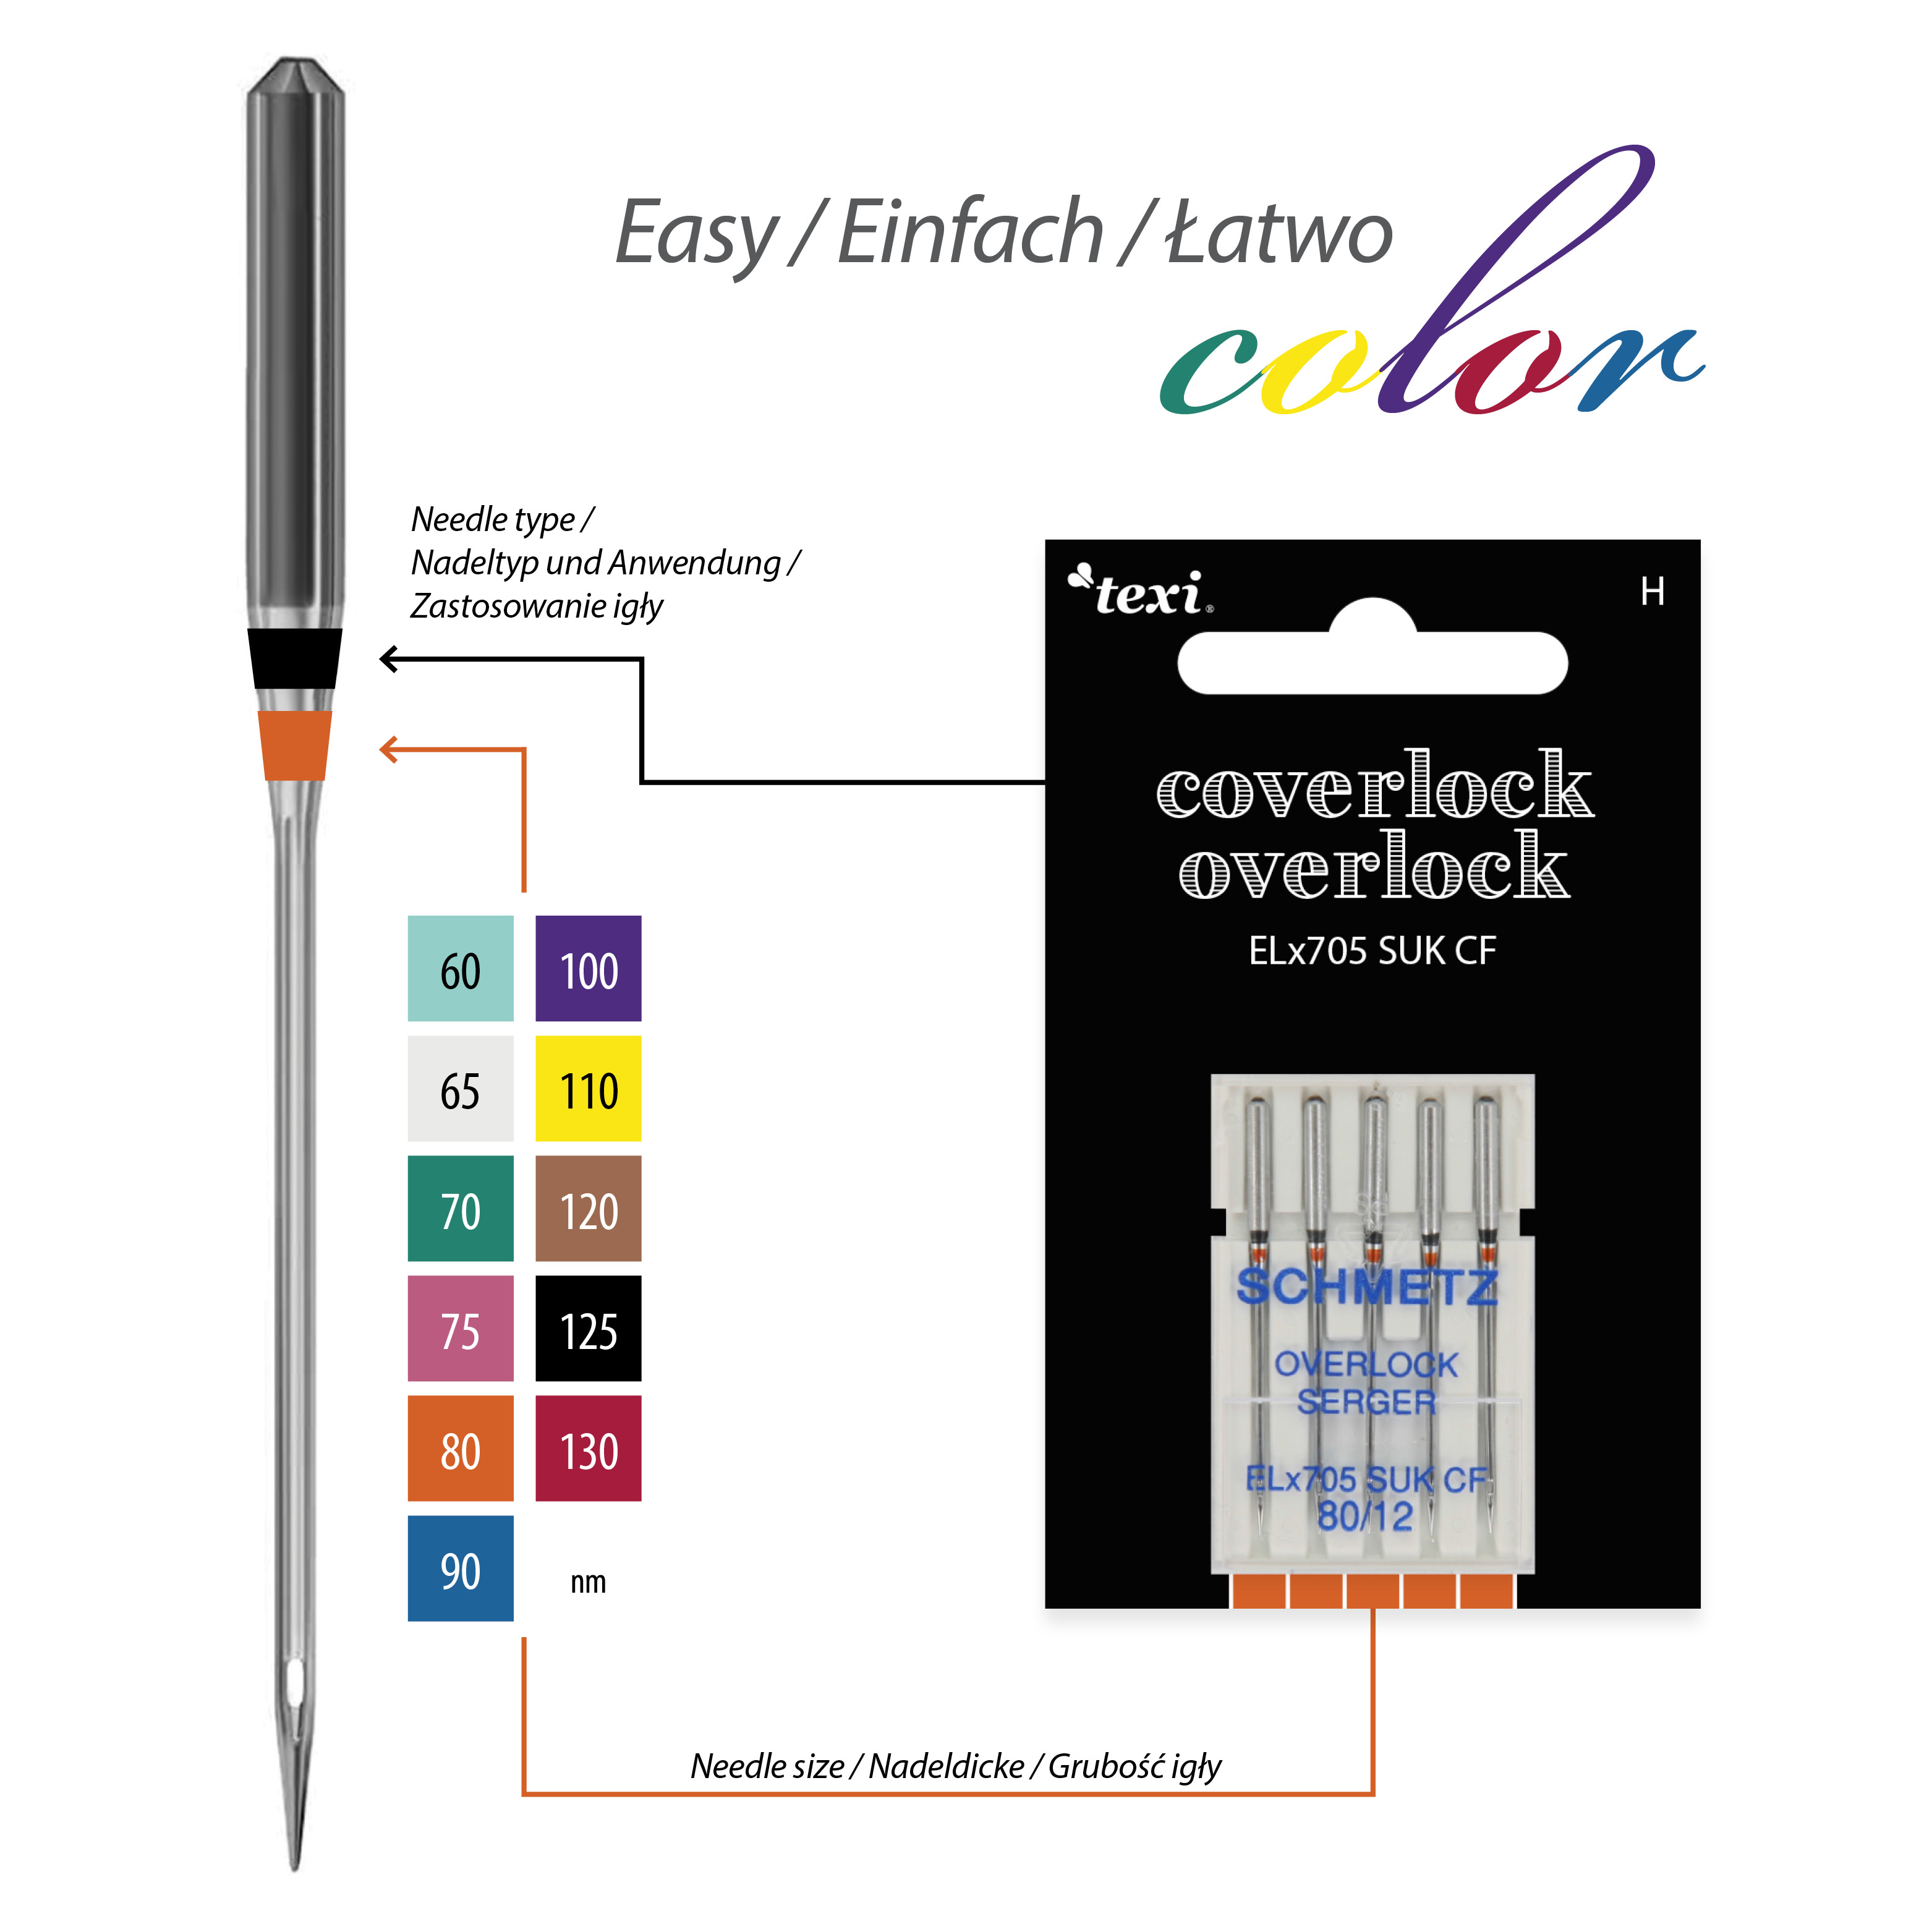 Needles for overlock/coverlock household machines, 5 pcs, size 80 - TEXI OVER/COVER ELX705 SUK CF 5X80